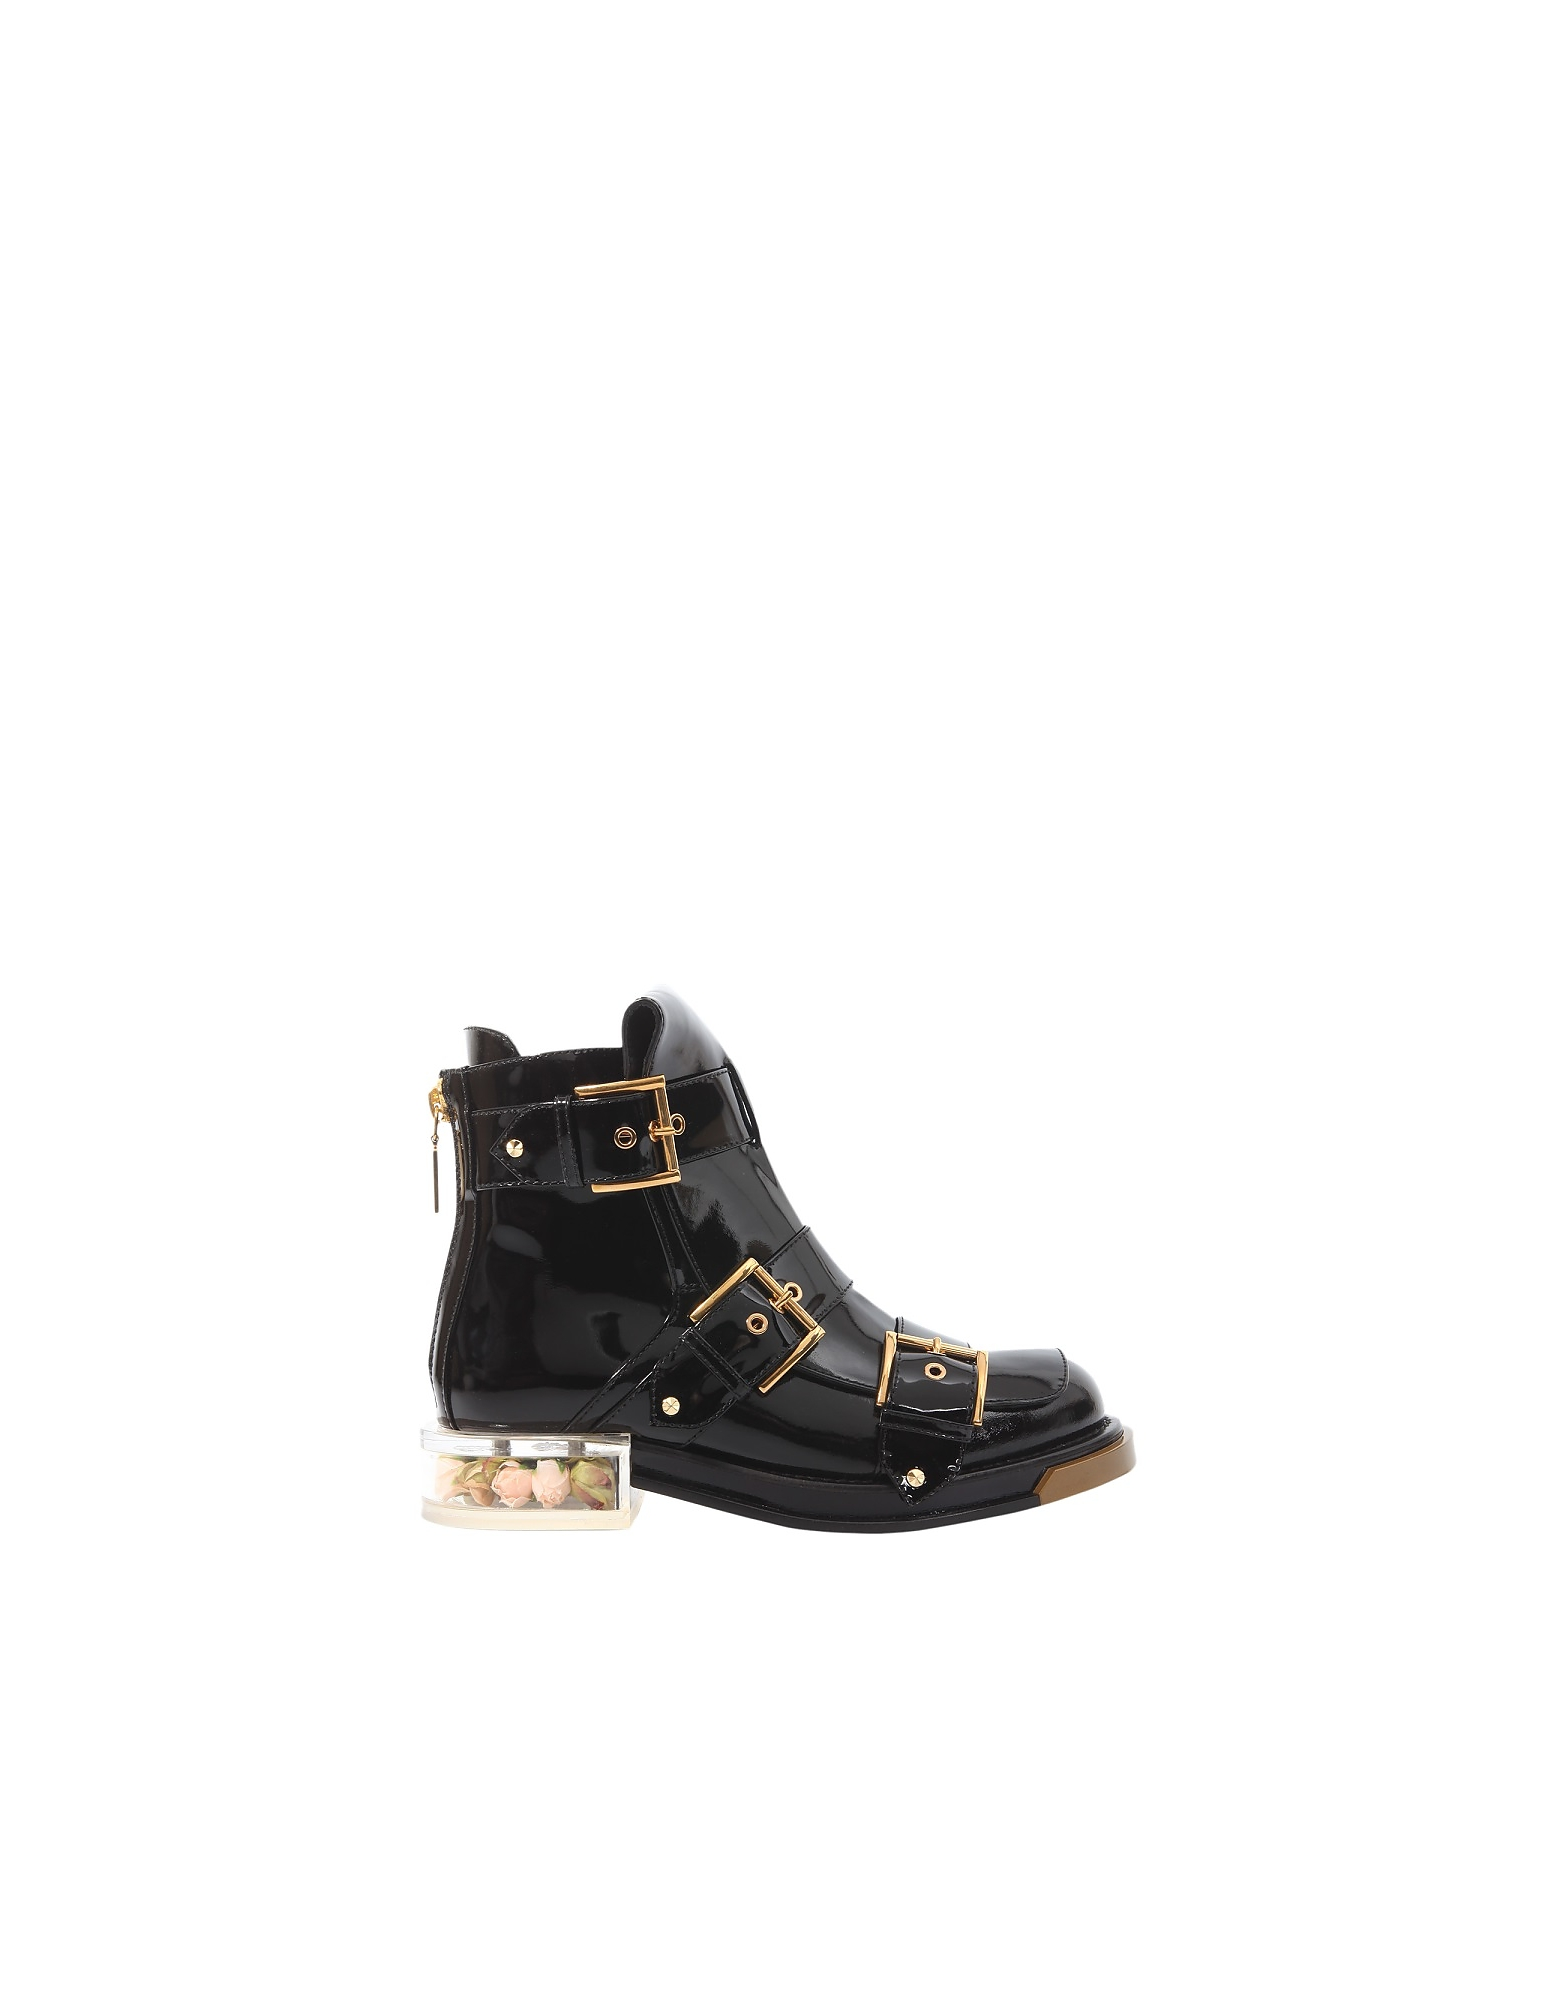 Alexander McQueen Designer Shoes, Black Patent Leather Buckle Boots